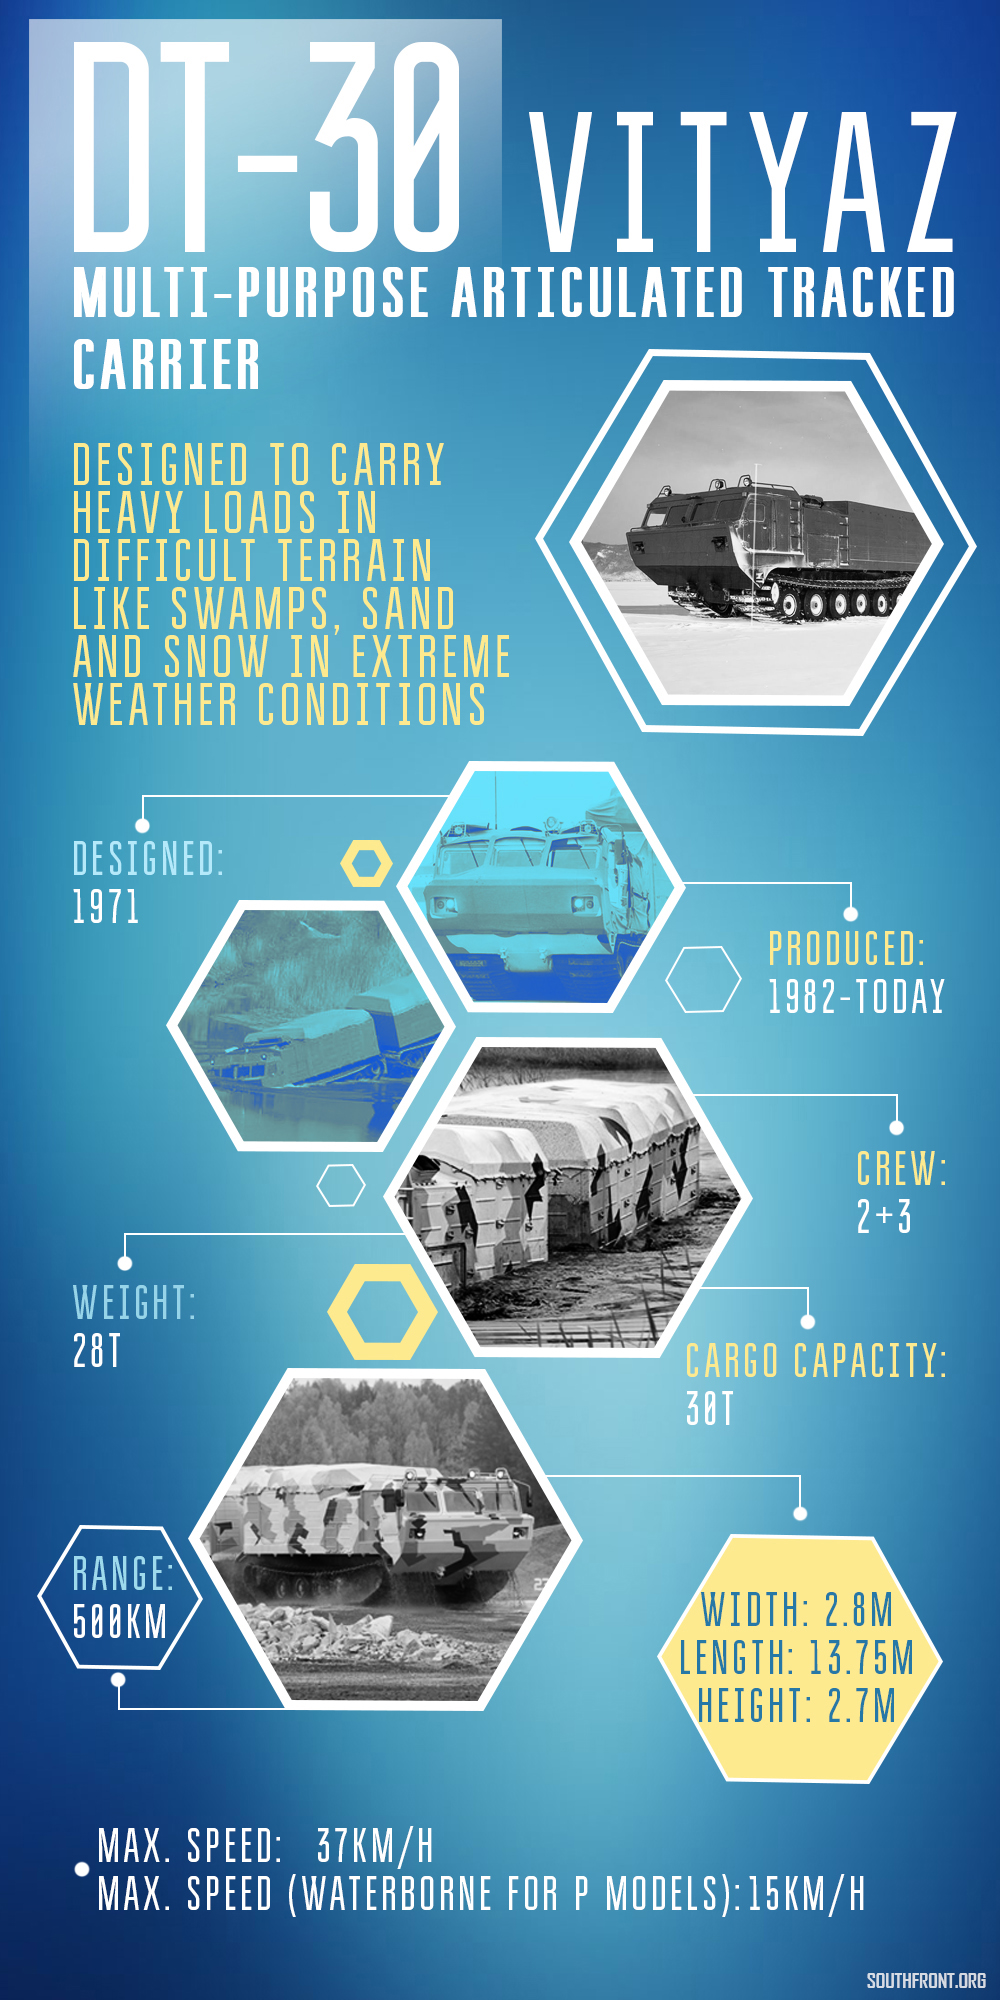 Russia's DT-30 Vityaz Multi-Purpose Articulated Tracked Carrier (Infographics)